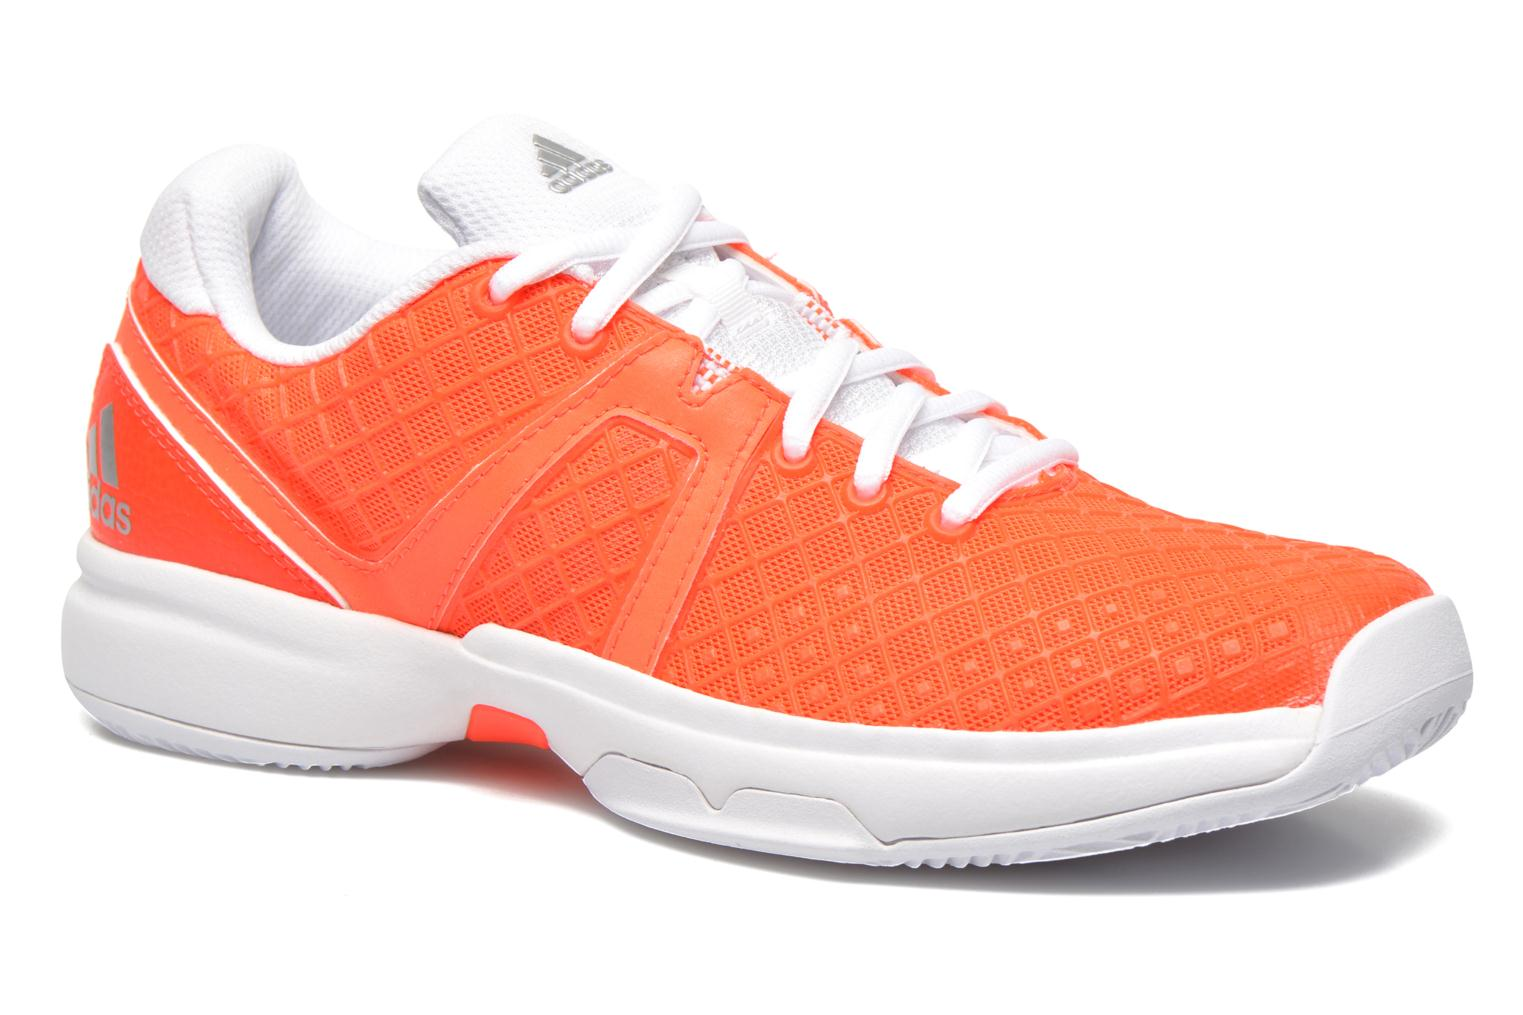 orange Chaussures Performance Sport De Adidas Chez Sonic Allegra q1xnPPwWtR